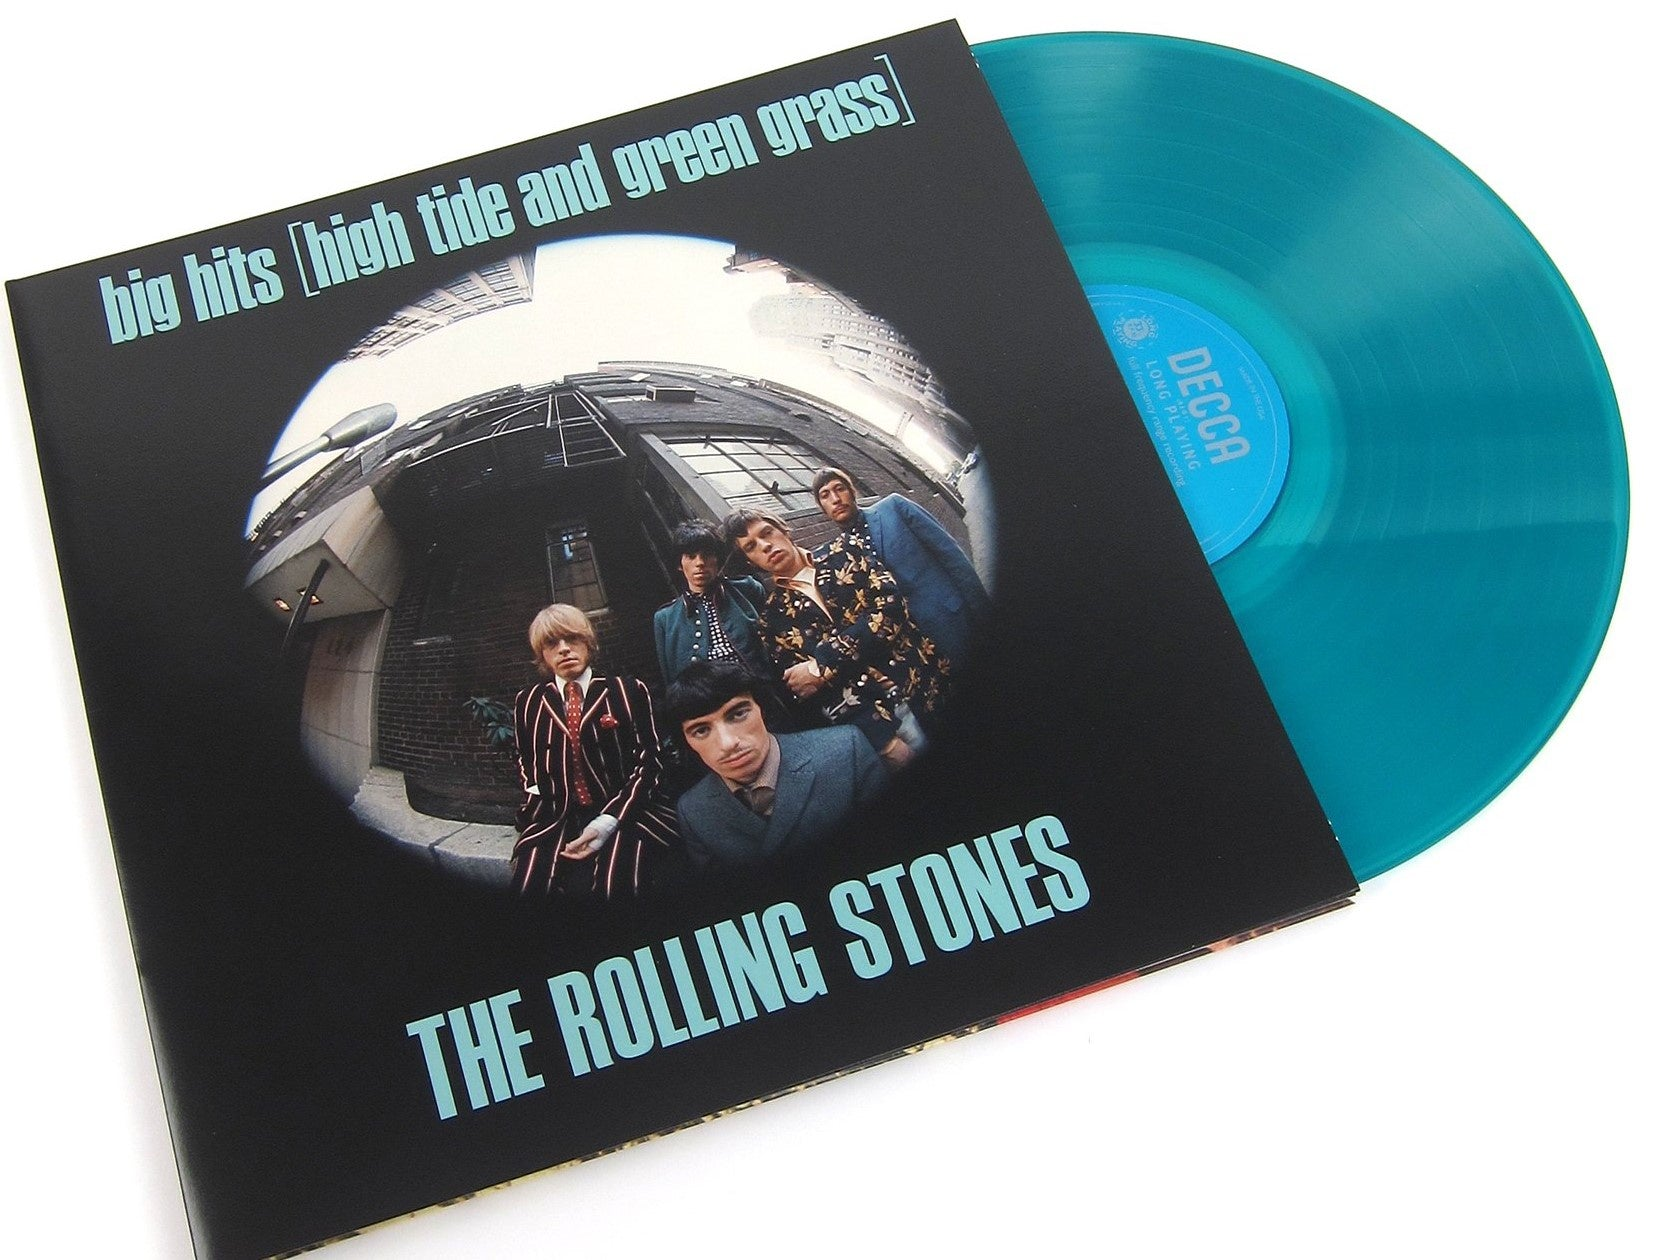 NEW - Rolling Stones (The), High Tide Green Grass Ltd Ed (Green LP)